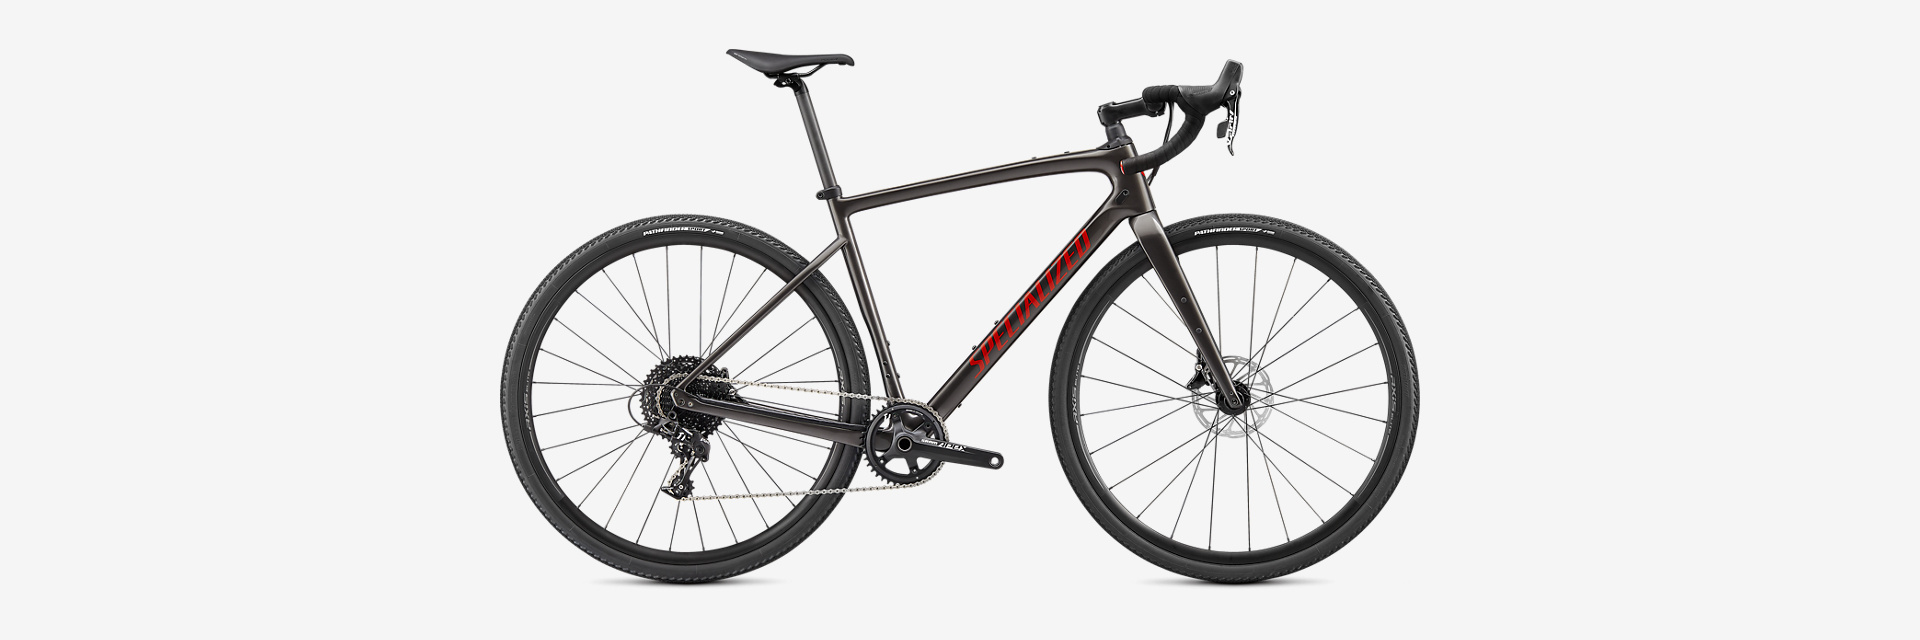 Specialized 20 Diverge Carbon, Smoke/Red 52